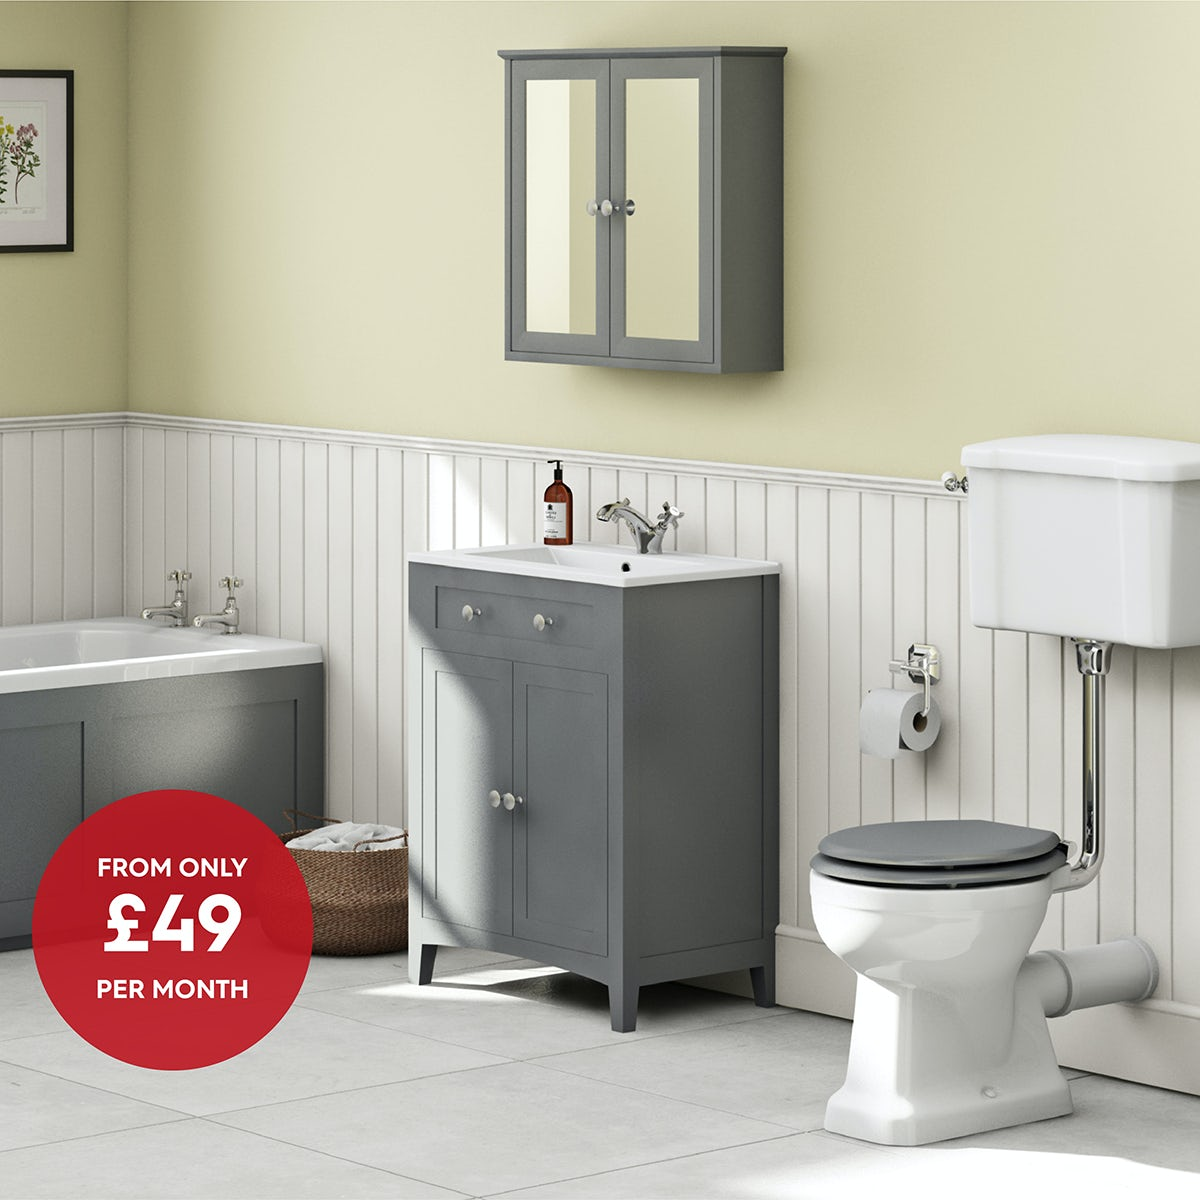 The Bath Co. Camberley grey low level complete furniture suite with straight bath 1700 x 700